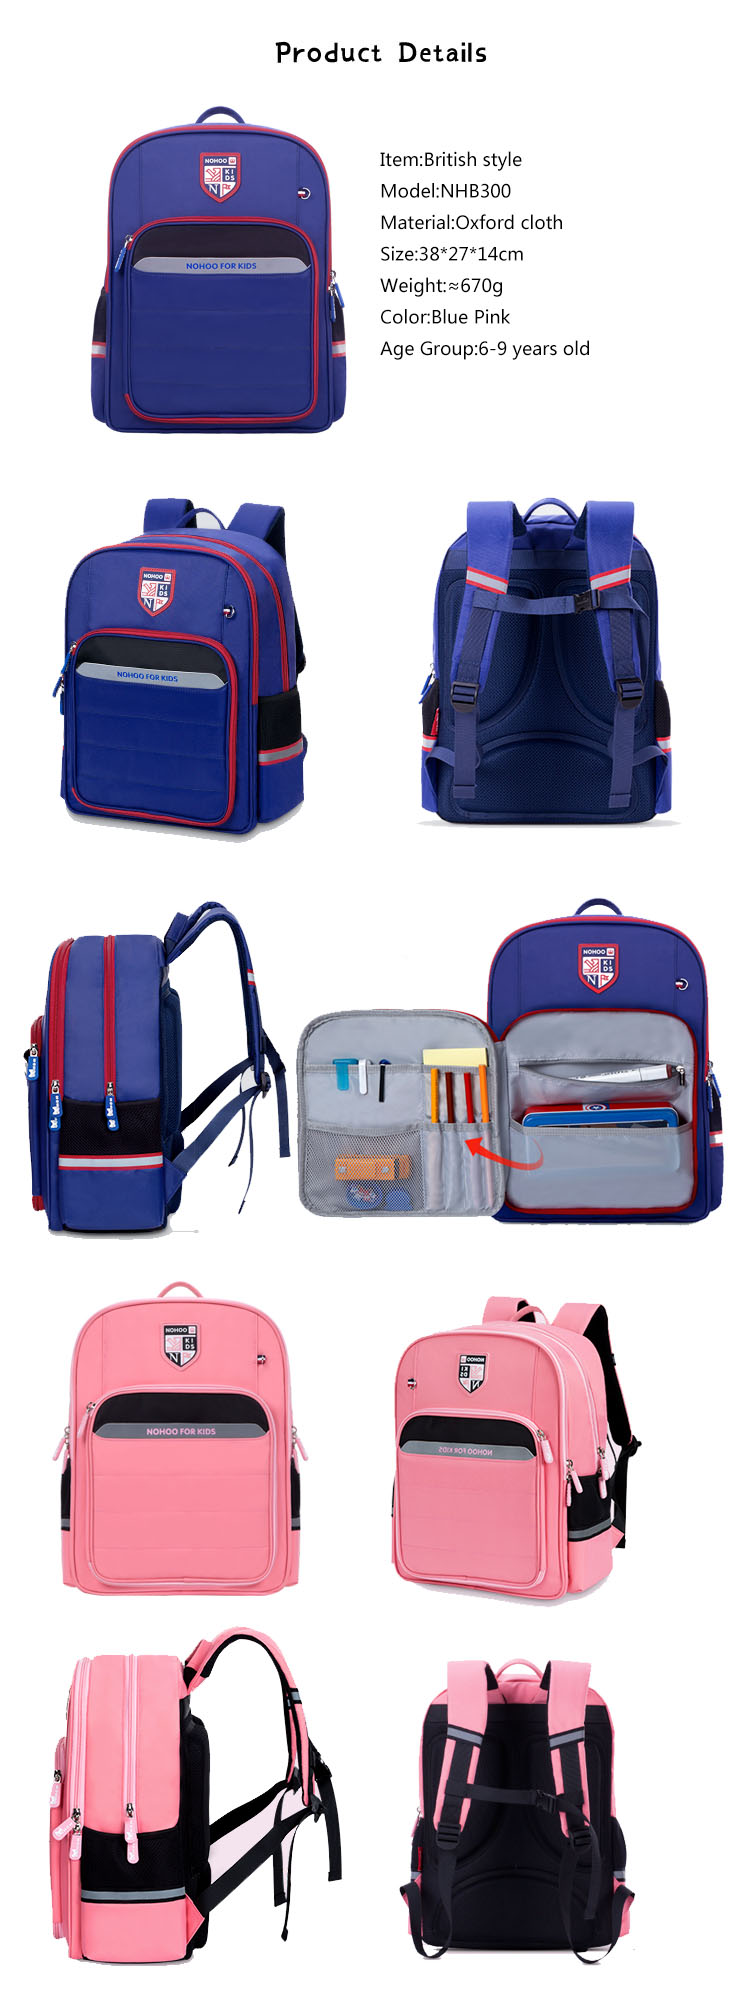 Nohoo Children Products-Oem Custom Backpack Manufacturers Price List | Nohoo Children Products